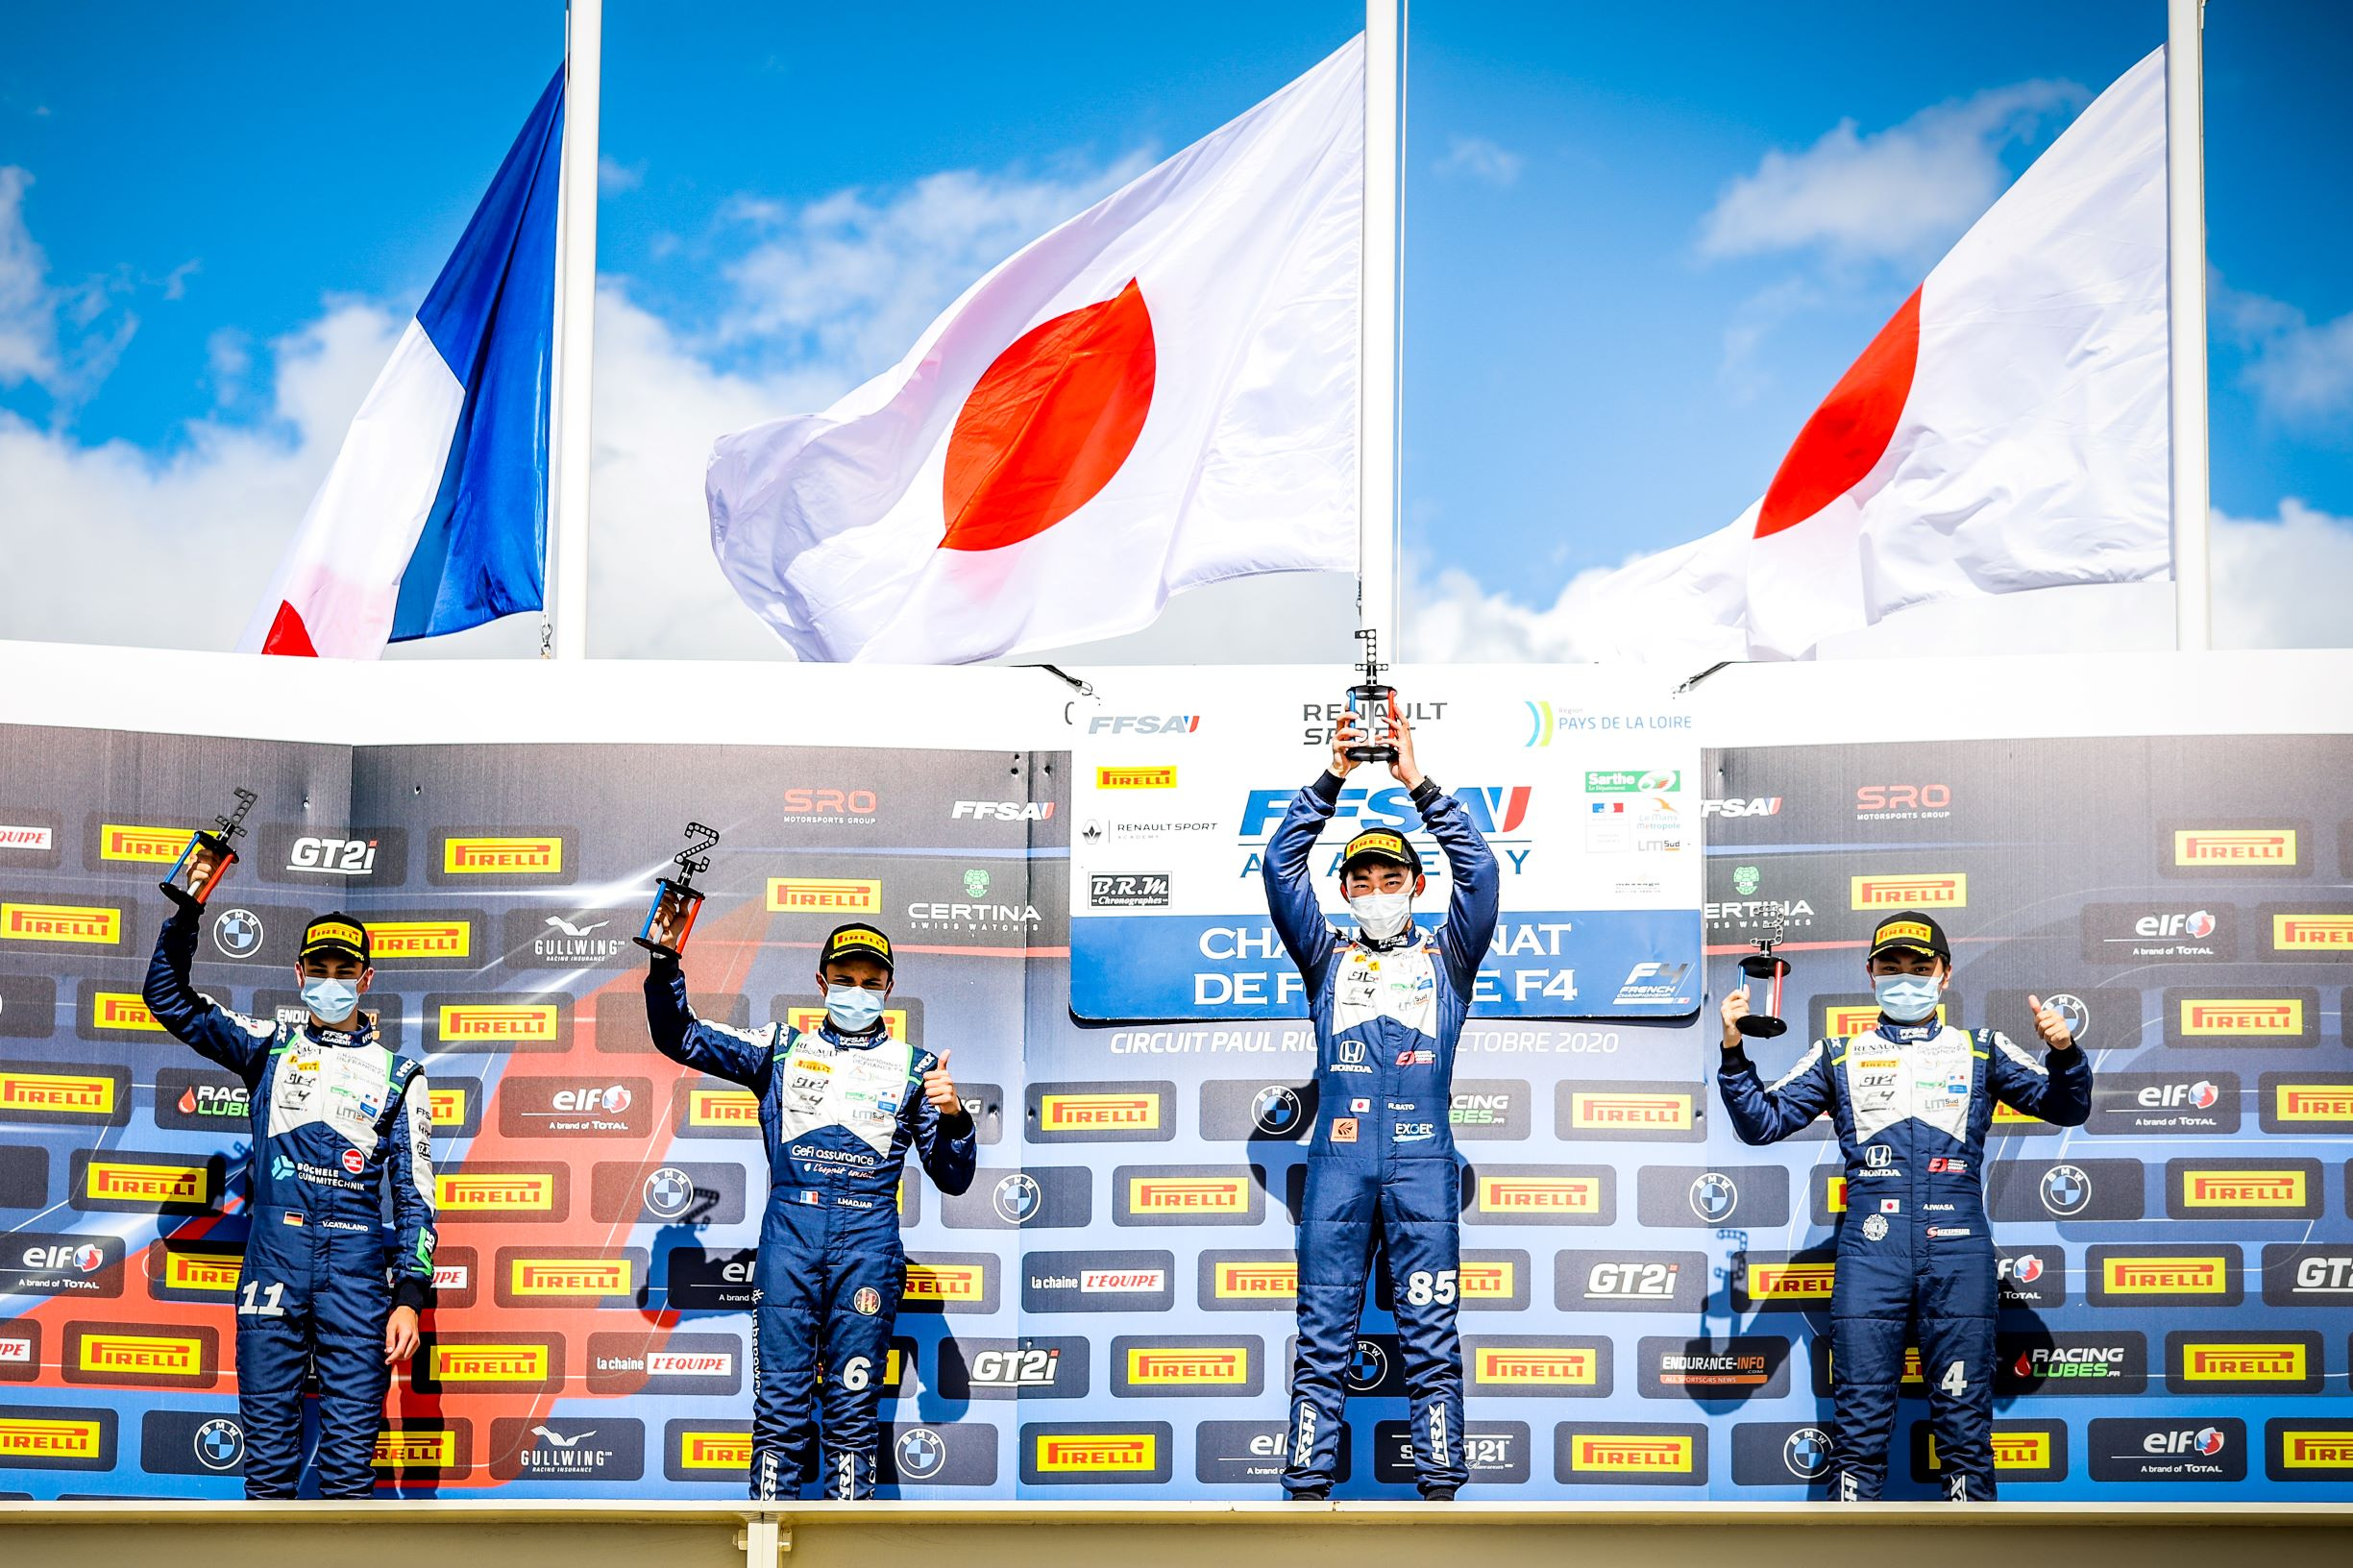 French F4 Championship Round # 2: Magny-Cours (09/13/20)